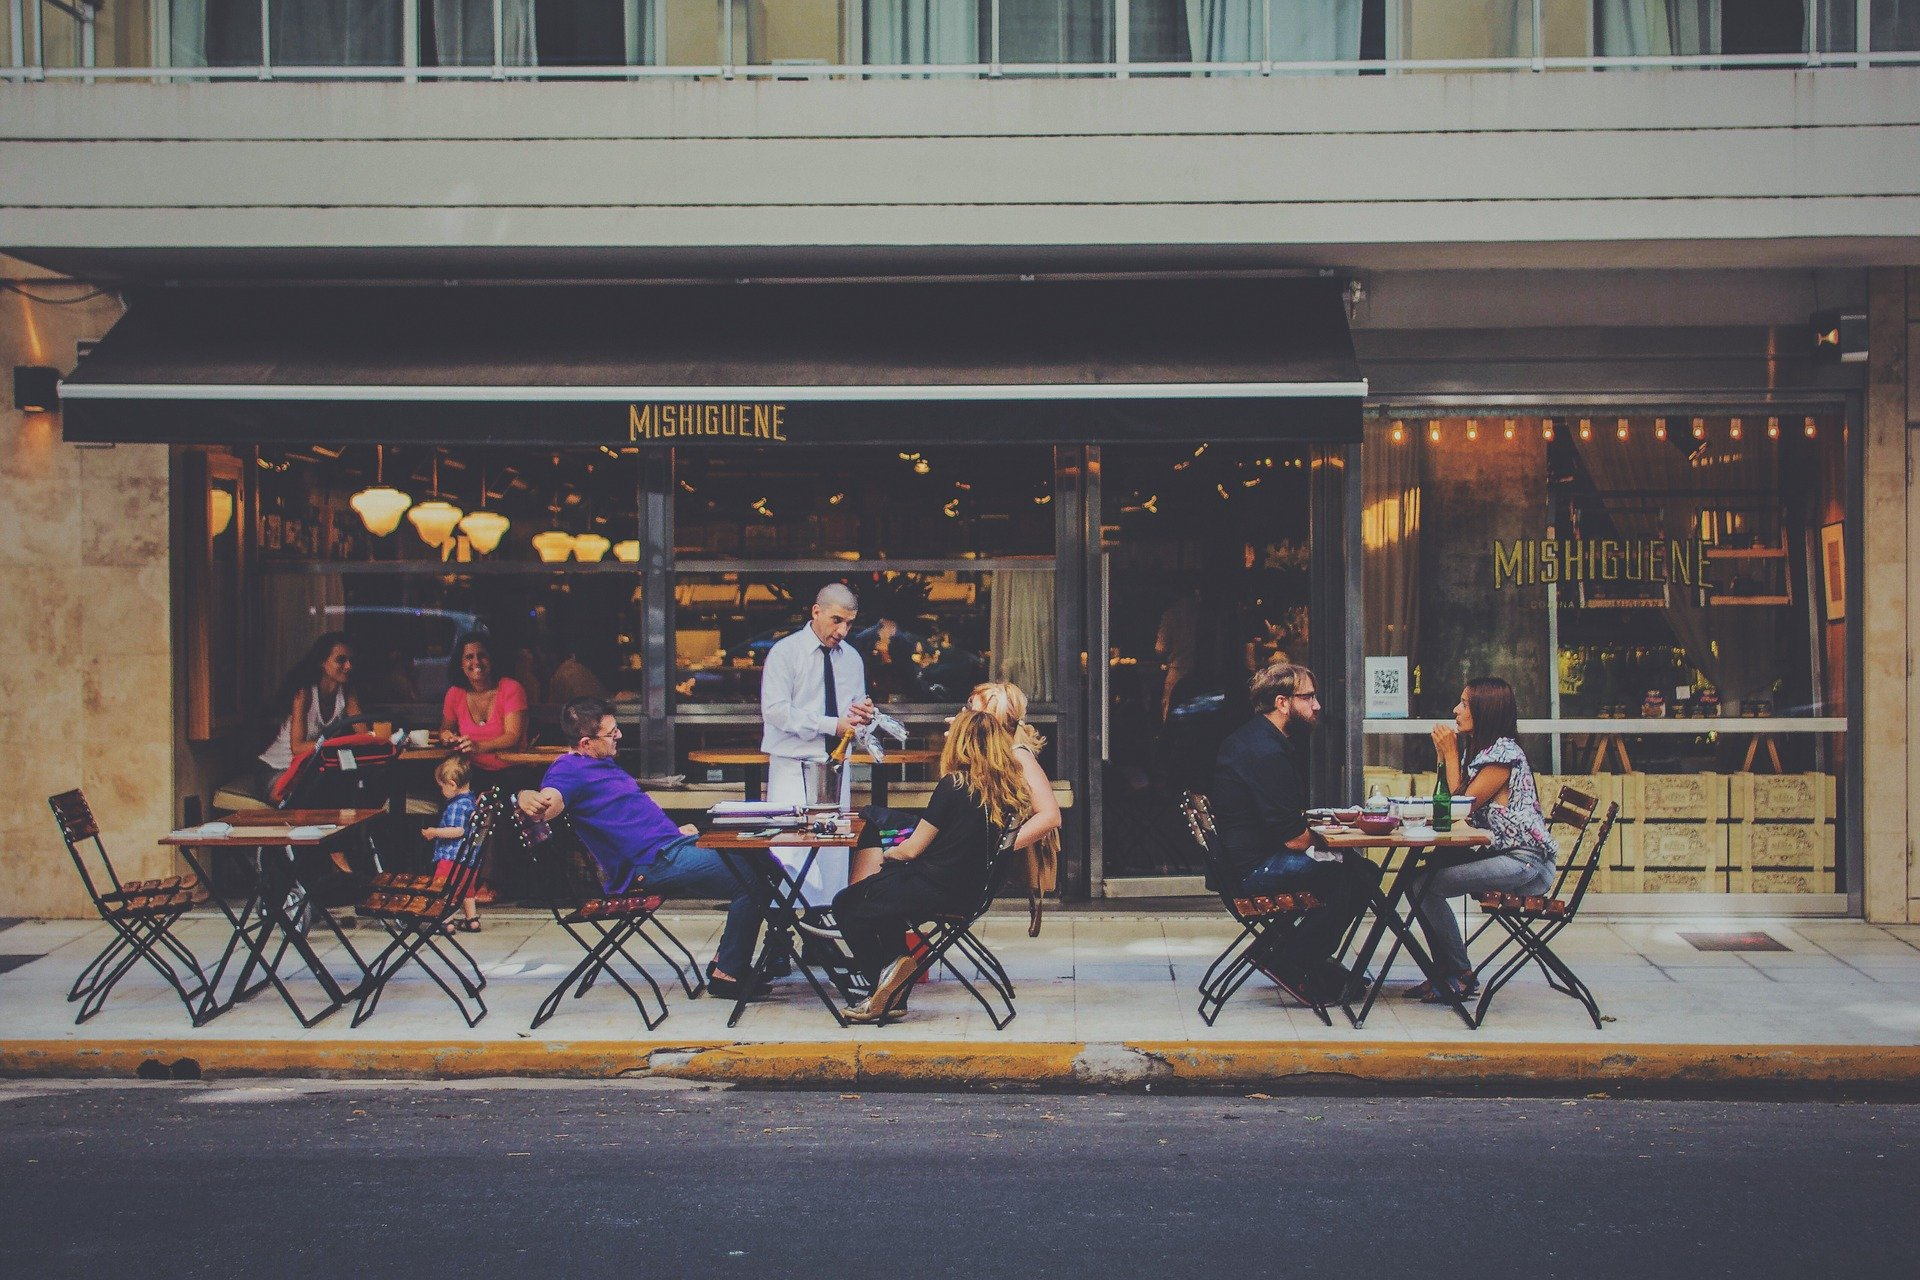 outdoor-dining-1846137_1920